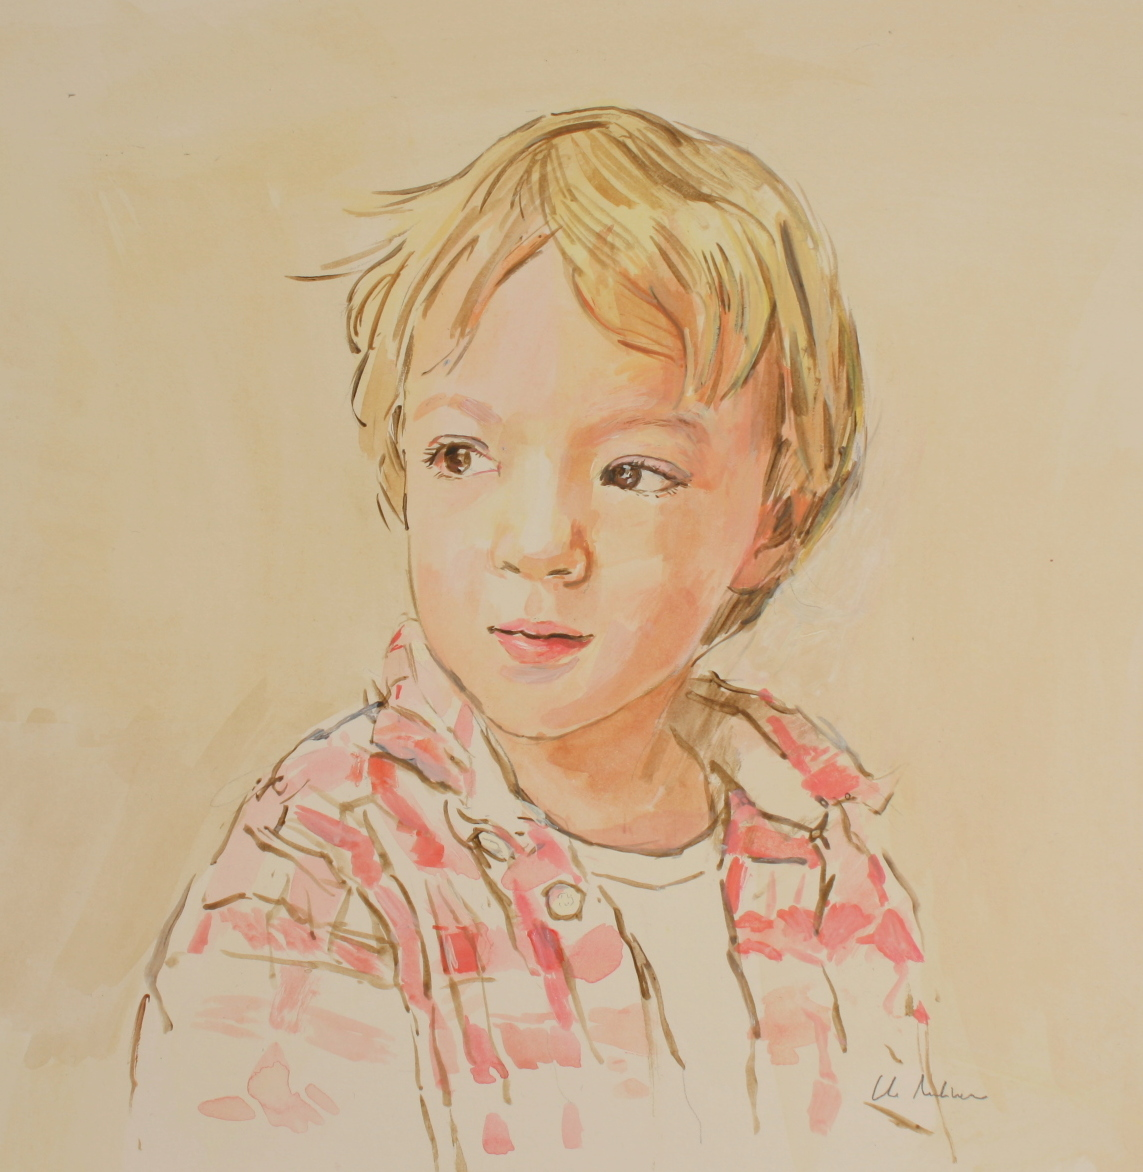 Study of a small boy done in acrylics